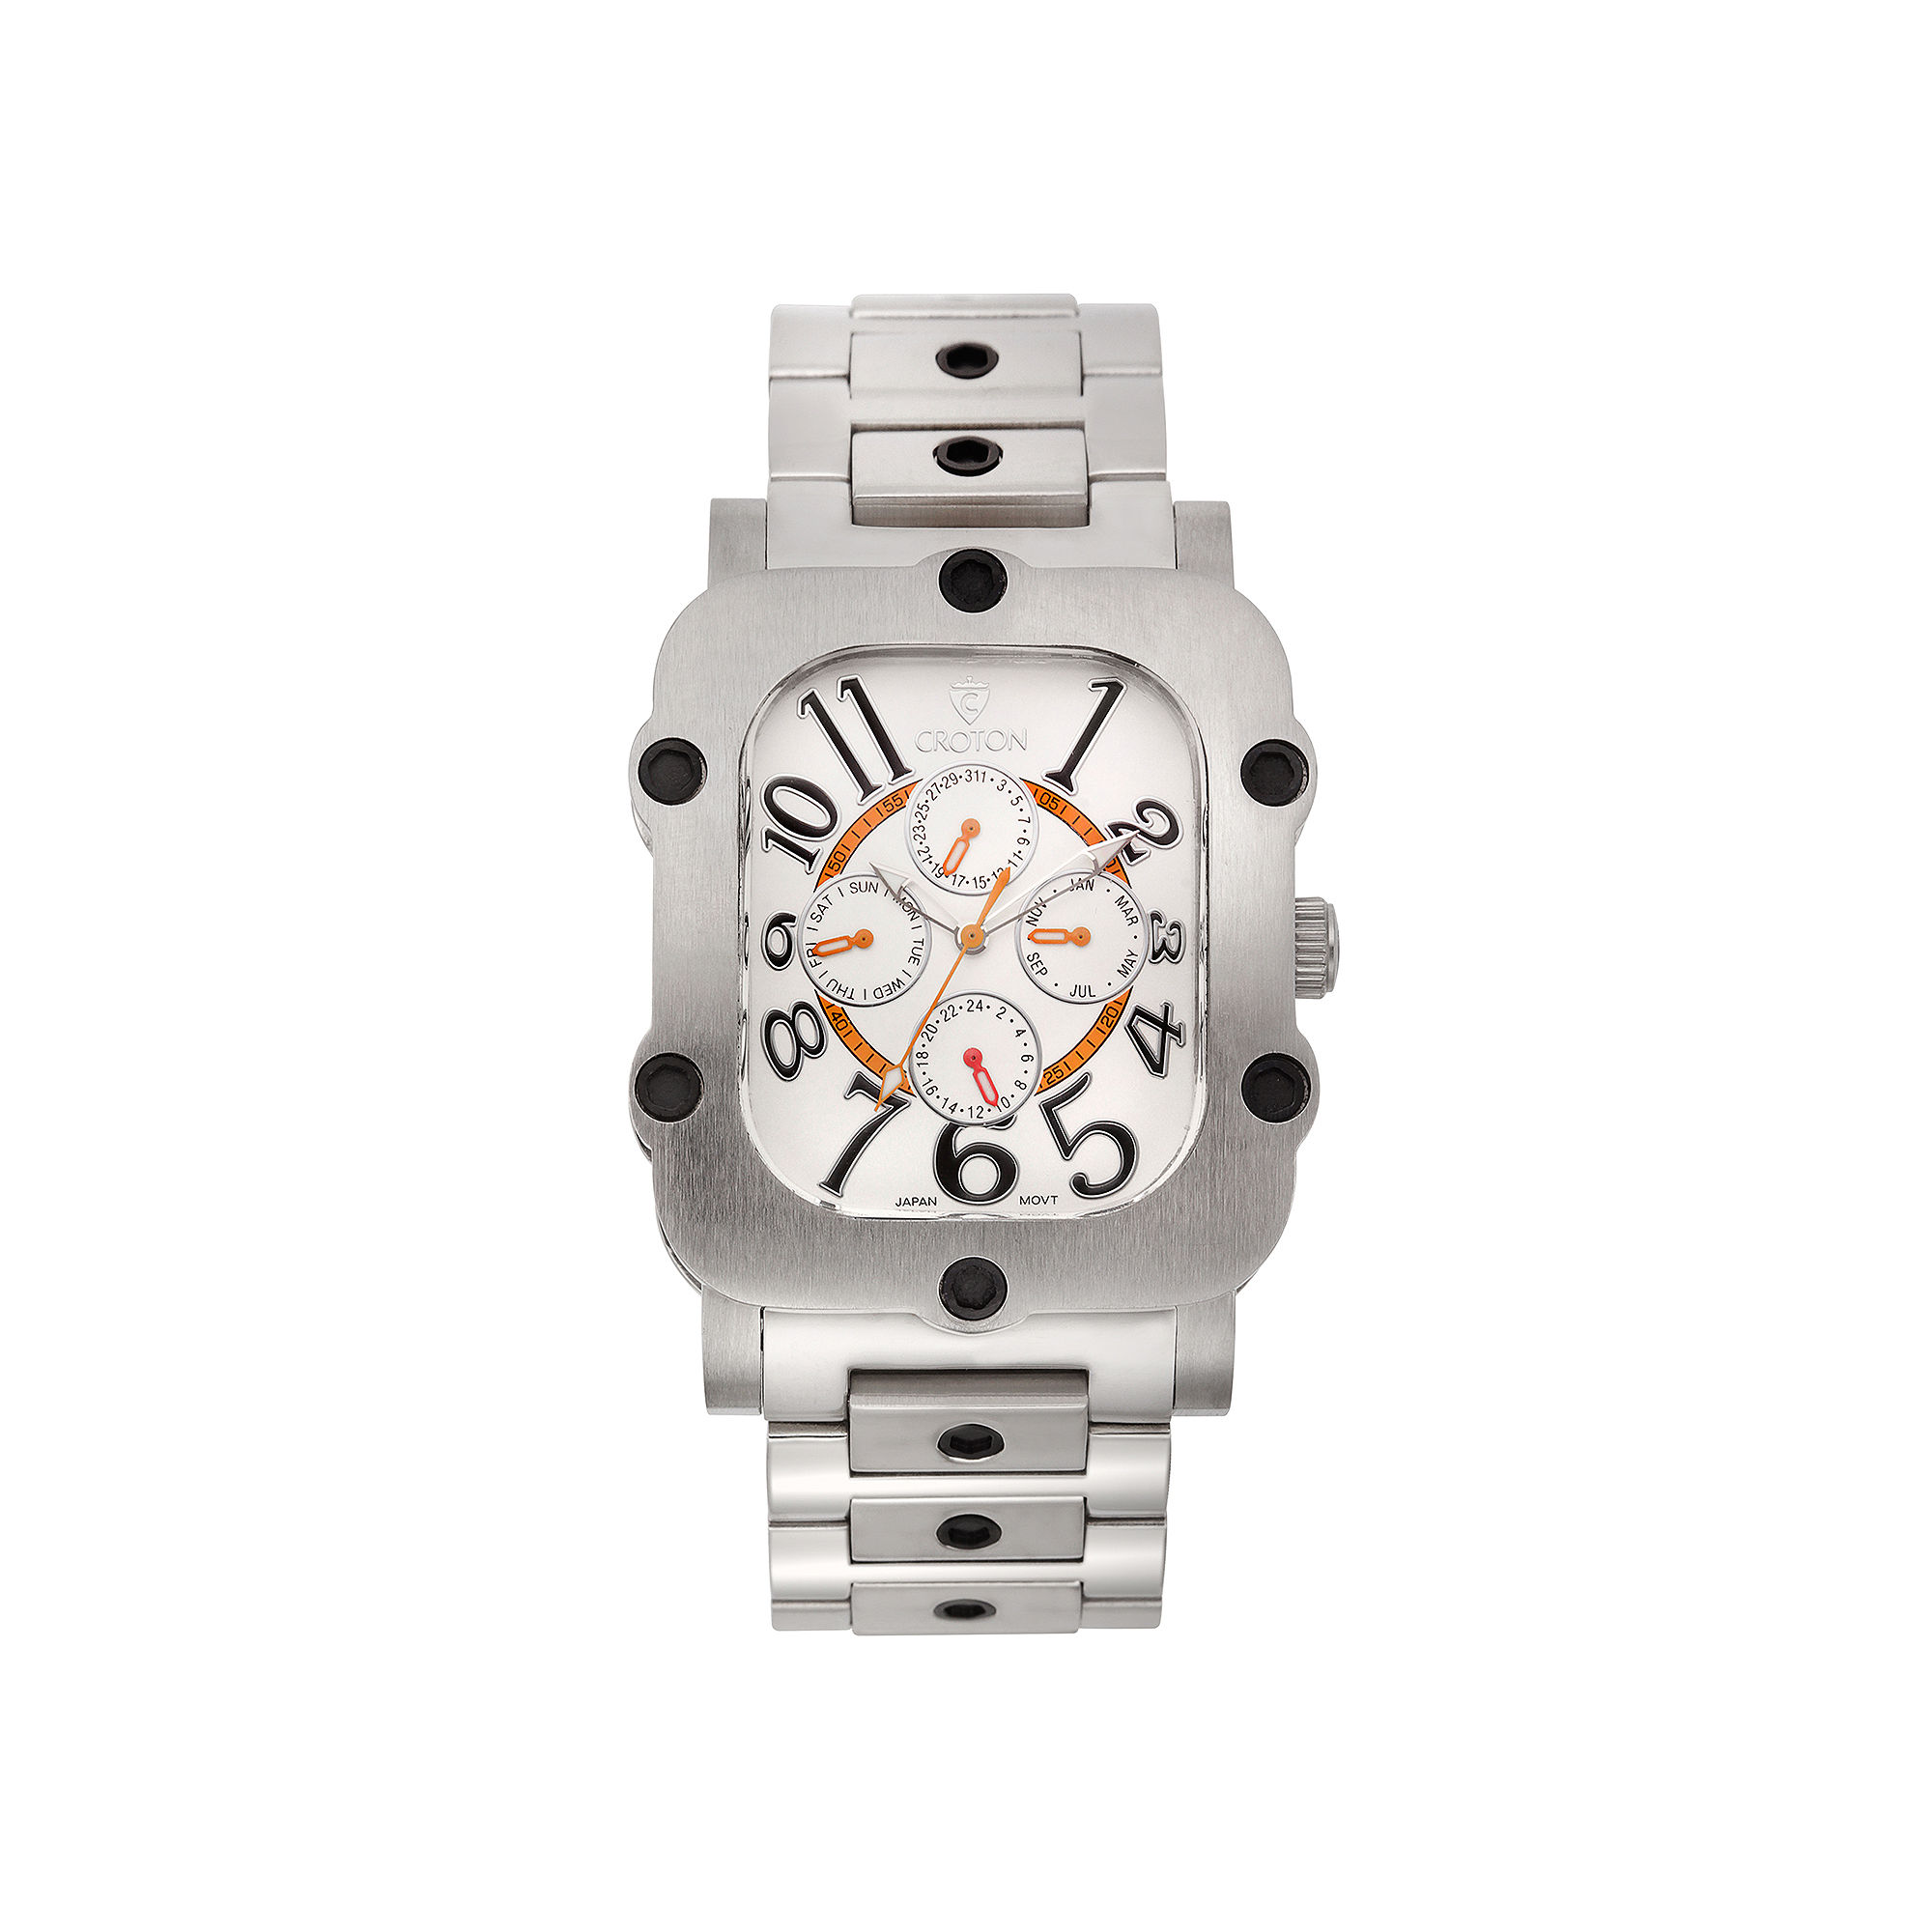 Croton Mens Silver-Tone Dial and Stainless Steel Watch